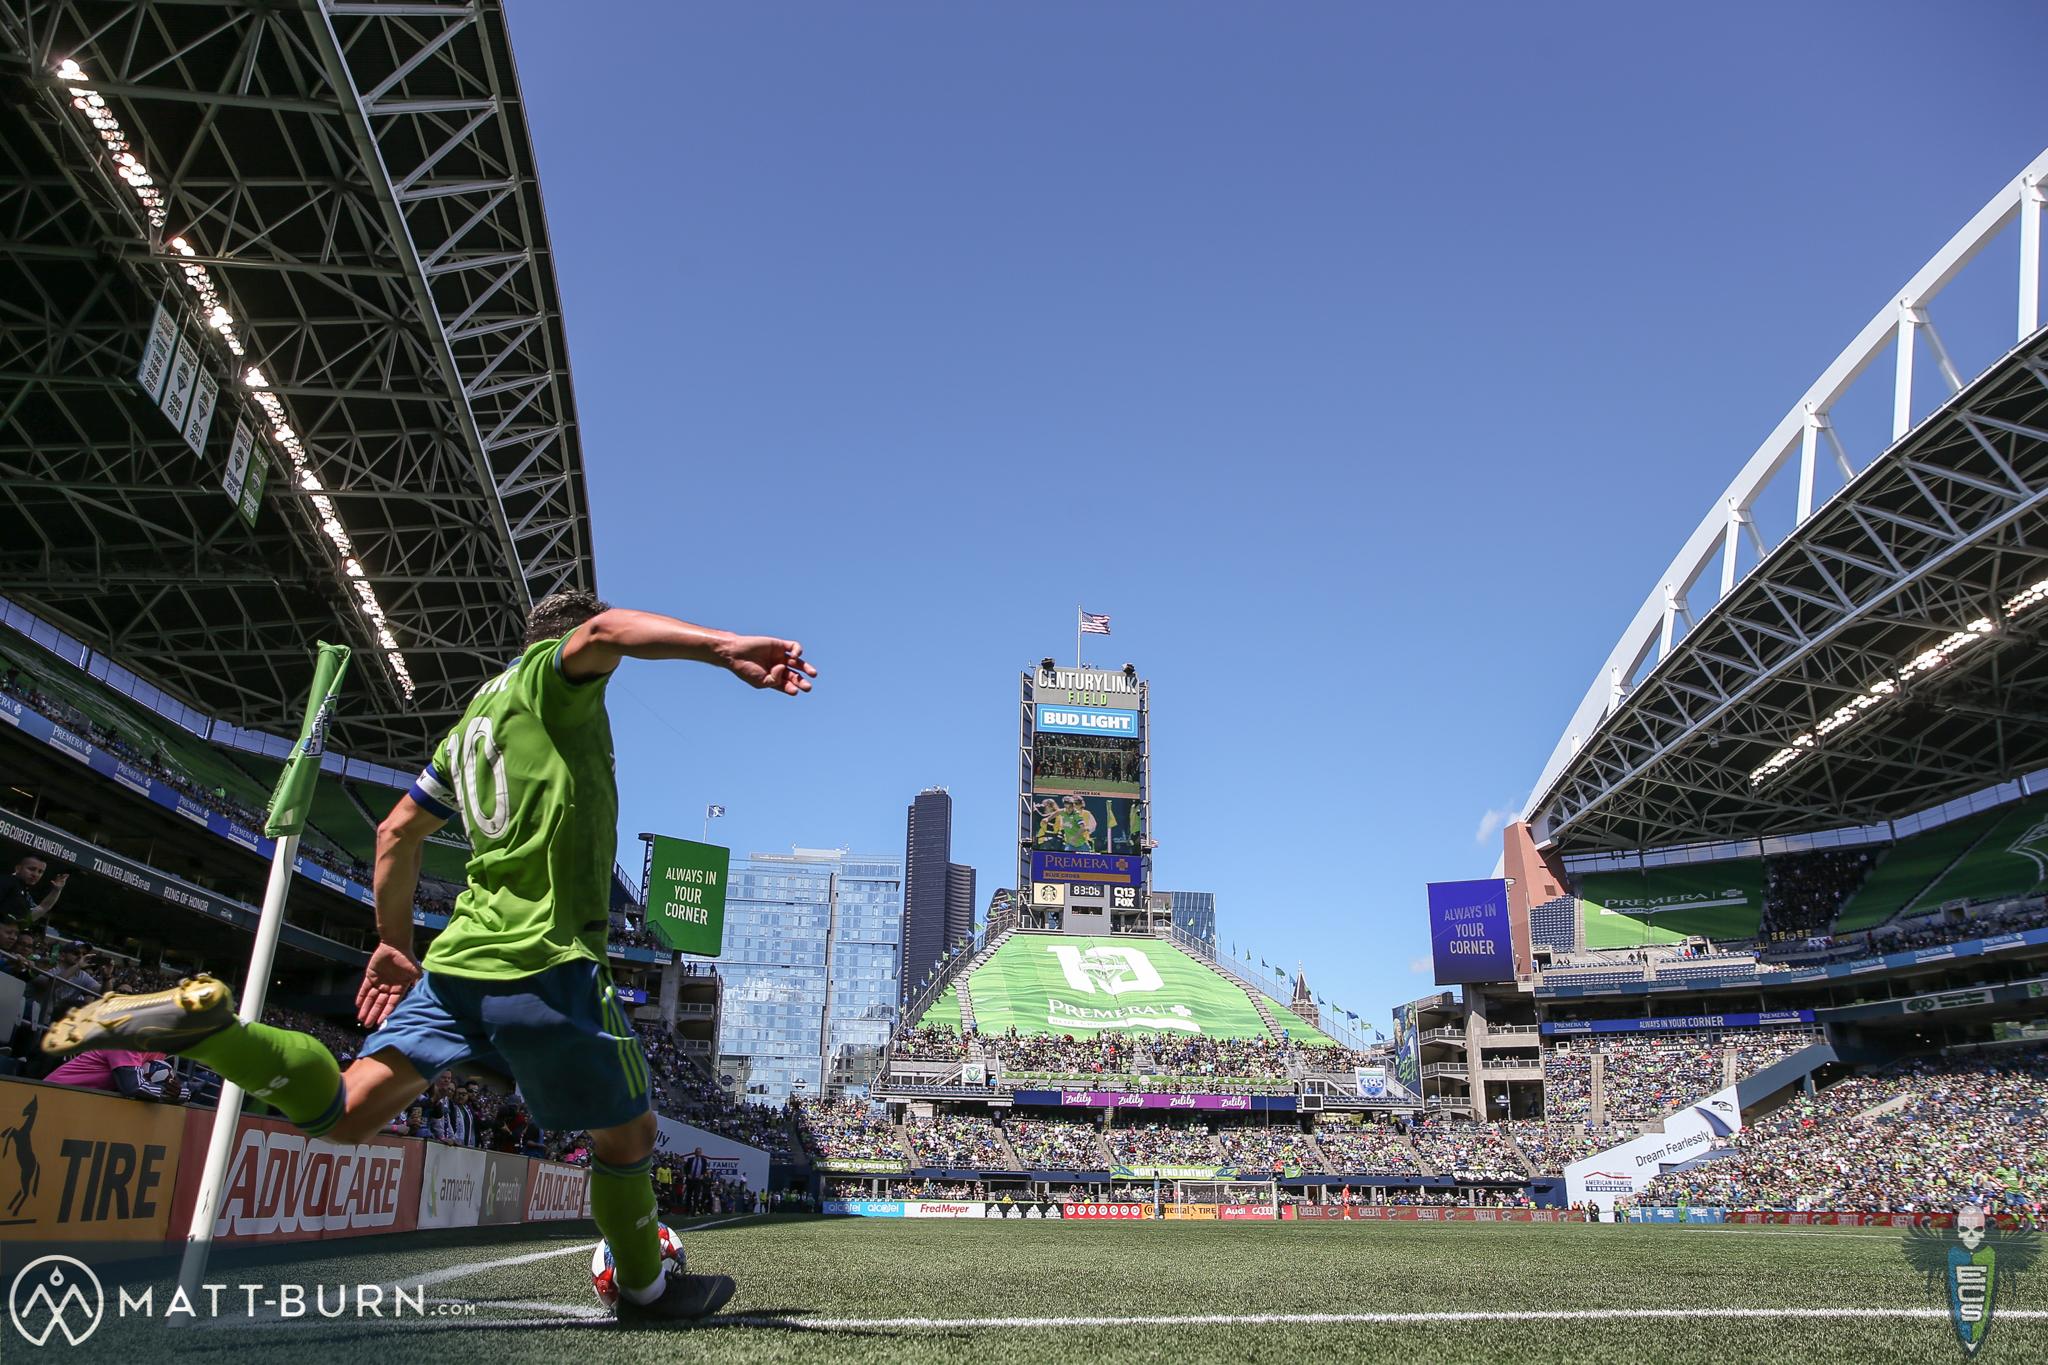 Sounders FC — Blog — Matt Burn | Photographer